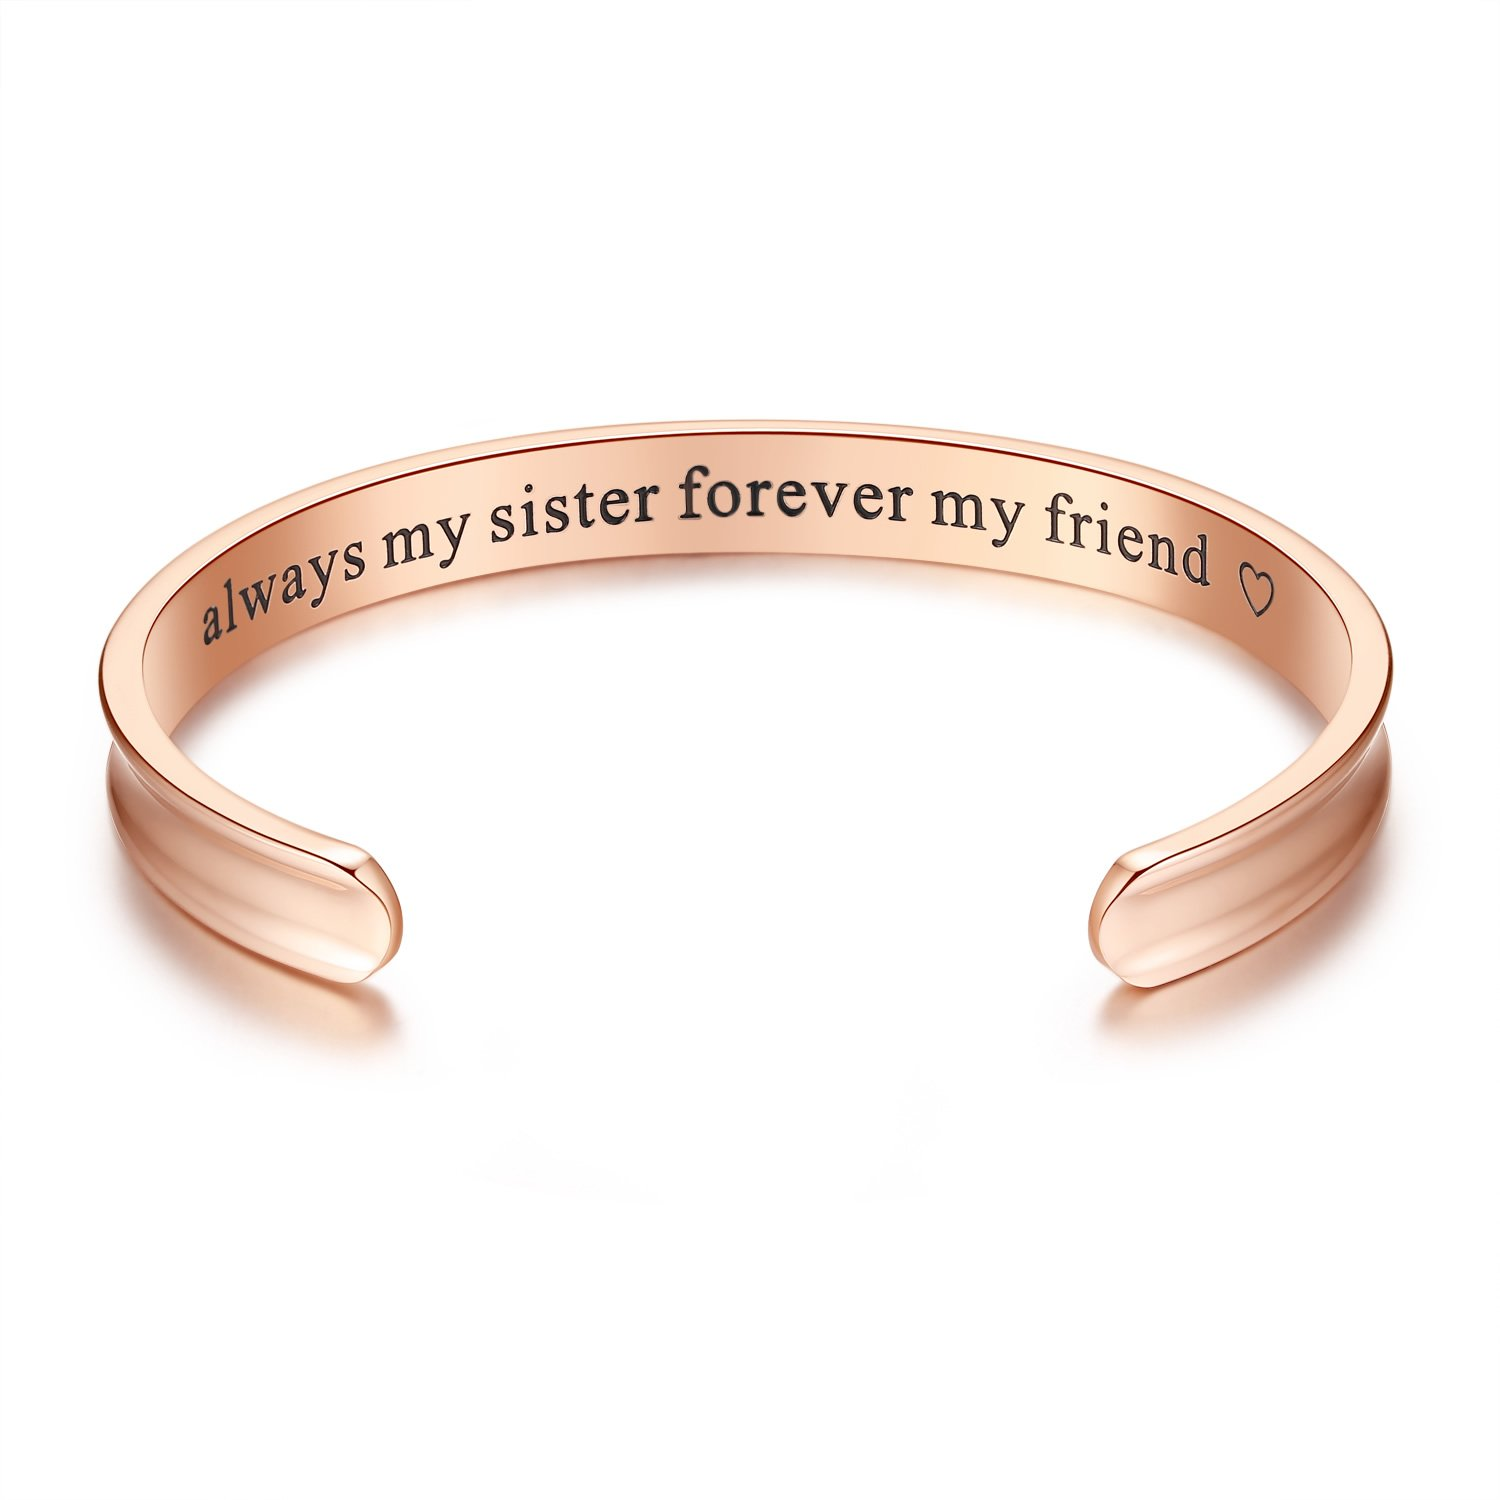 'Always my sister forever my friend' Grooved Cuff Bangle Bracelet, Sister Gift, Jewelry Gifts for women, Sister, Girls, Birthday, Friendship, Thanksgiving, Christmas, Anniversary Day Gift (Rose gold)